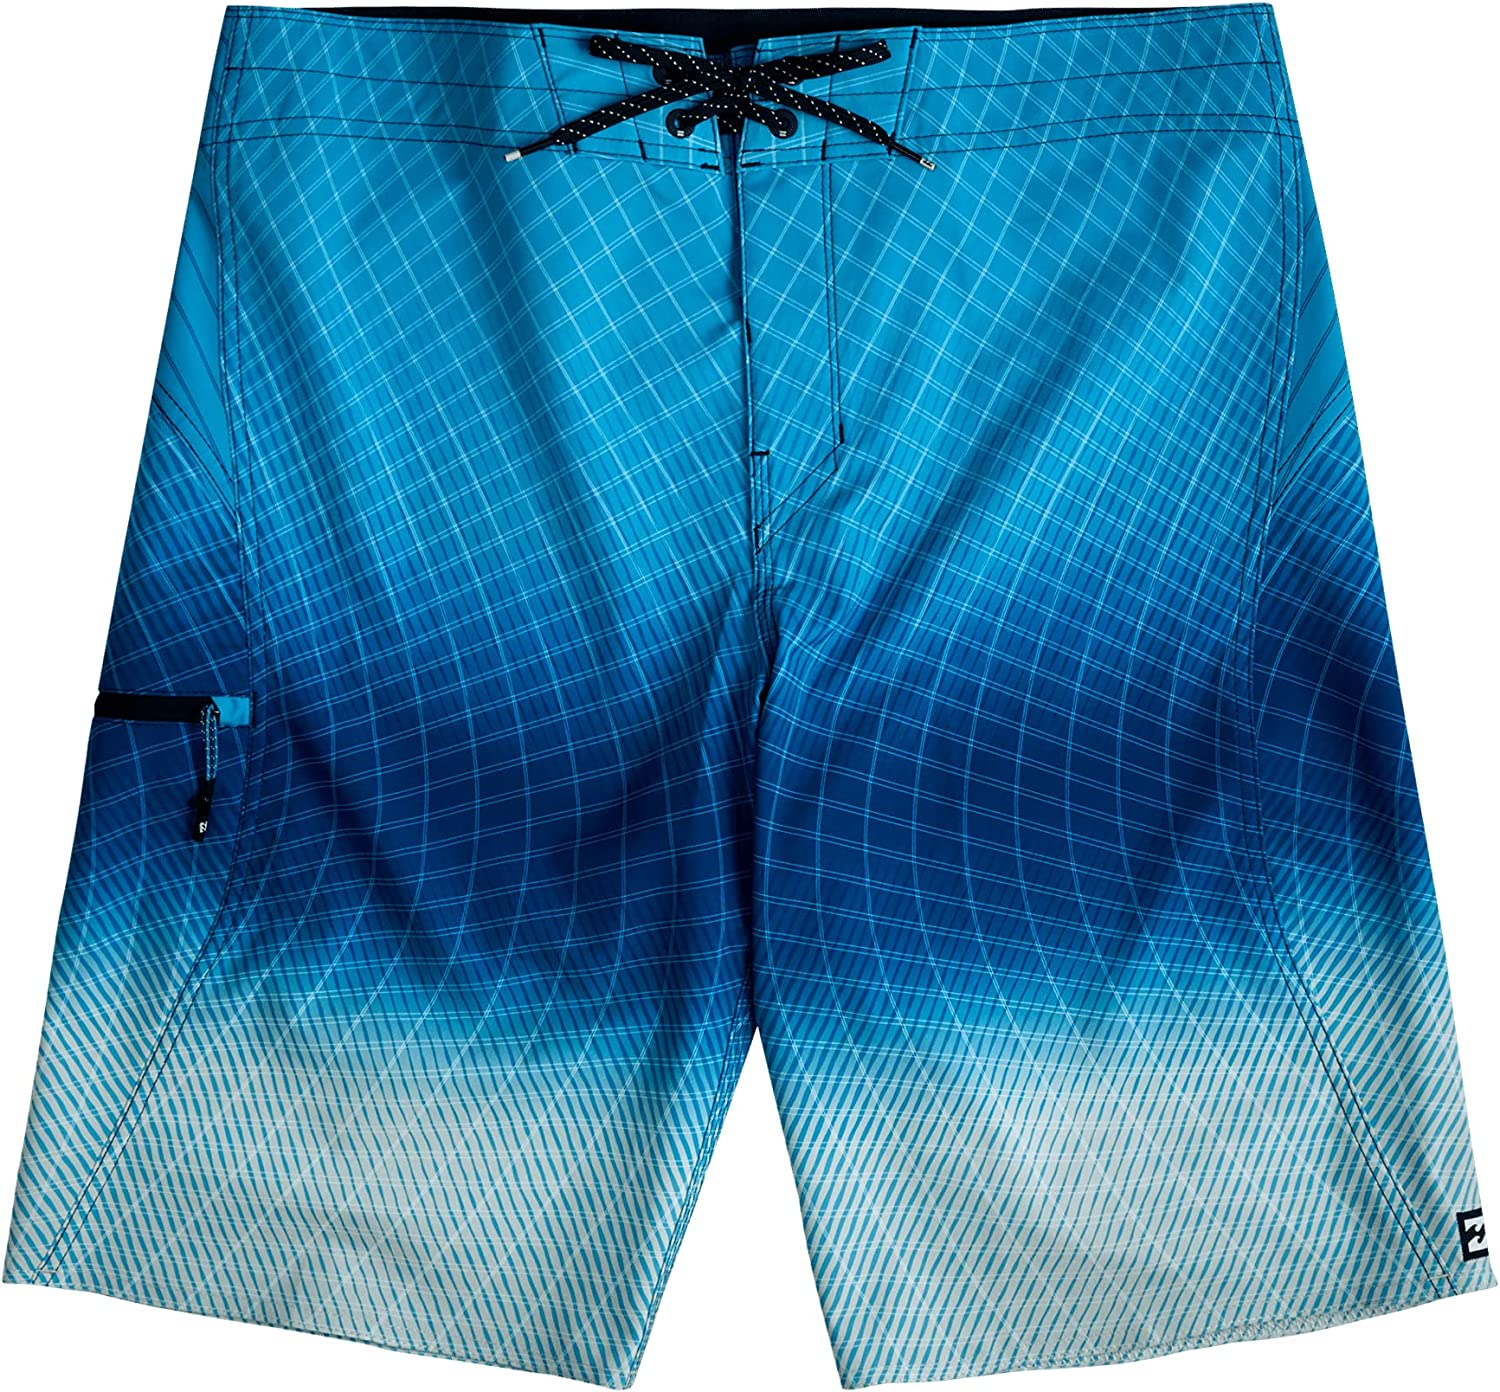 Billabong Mail order cheap Men's Fluid Pro Popular shop is the lowest price challenge 4-Way Boardshort Performance Stretch